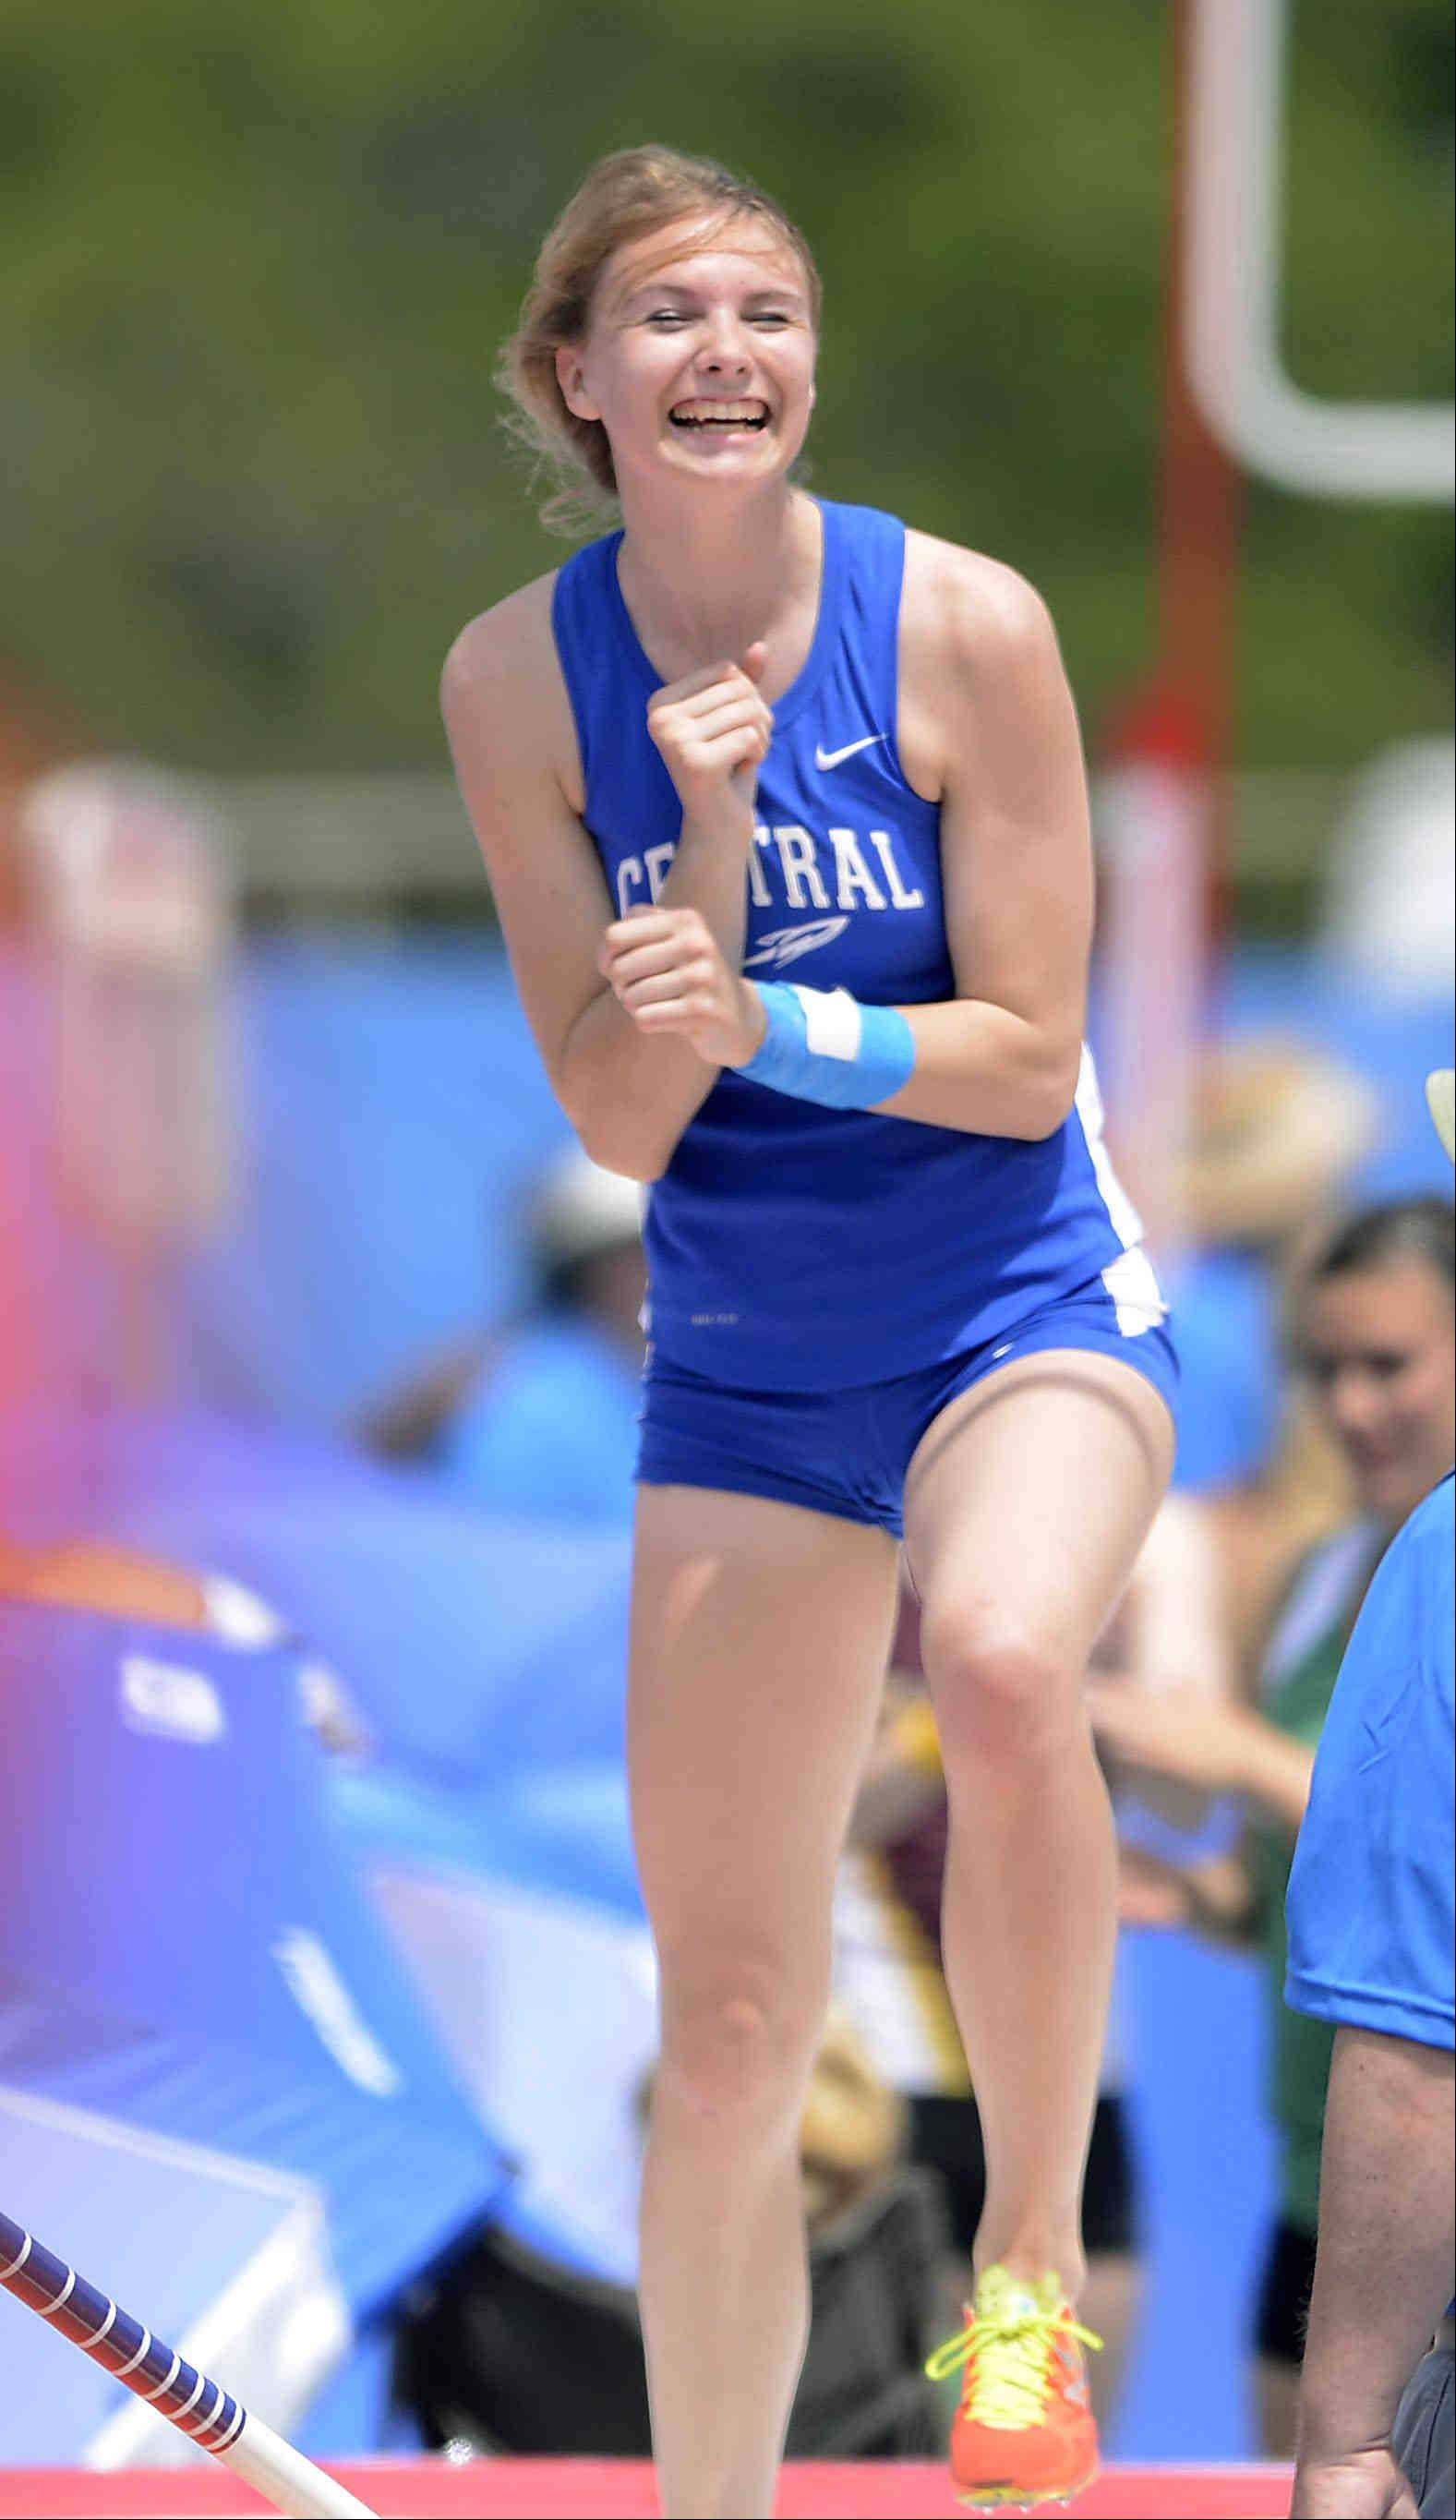 Burlington Central's Katie Trupp reacts to her second place finish in the pole vault Saturday at the Class 2A girls state track and field finals at O'Brien Stadium at Eastern Illinois University in Charleston.